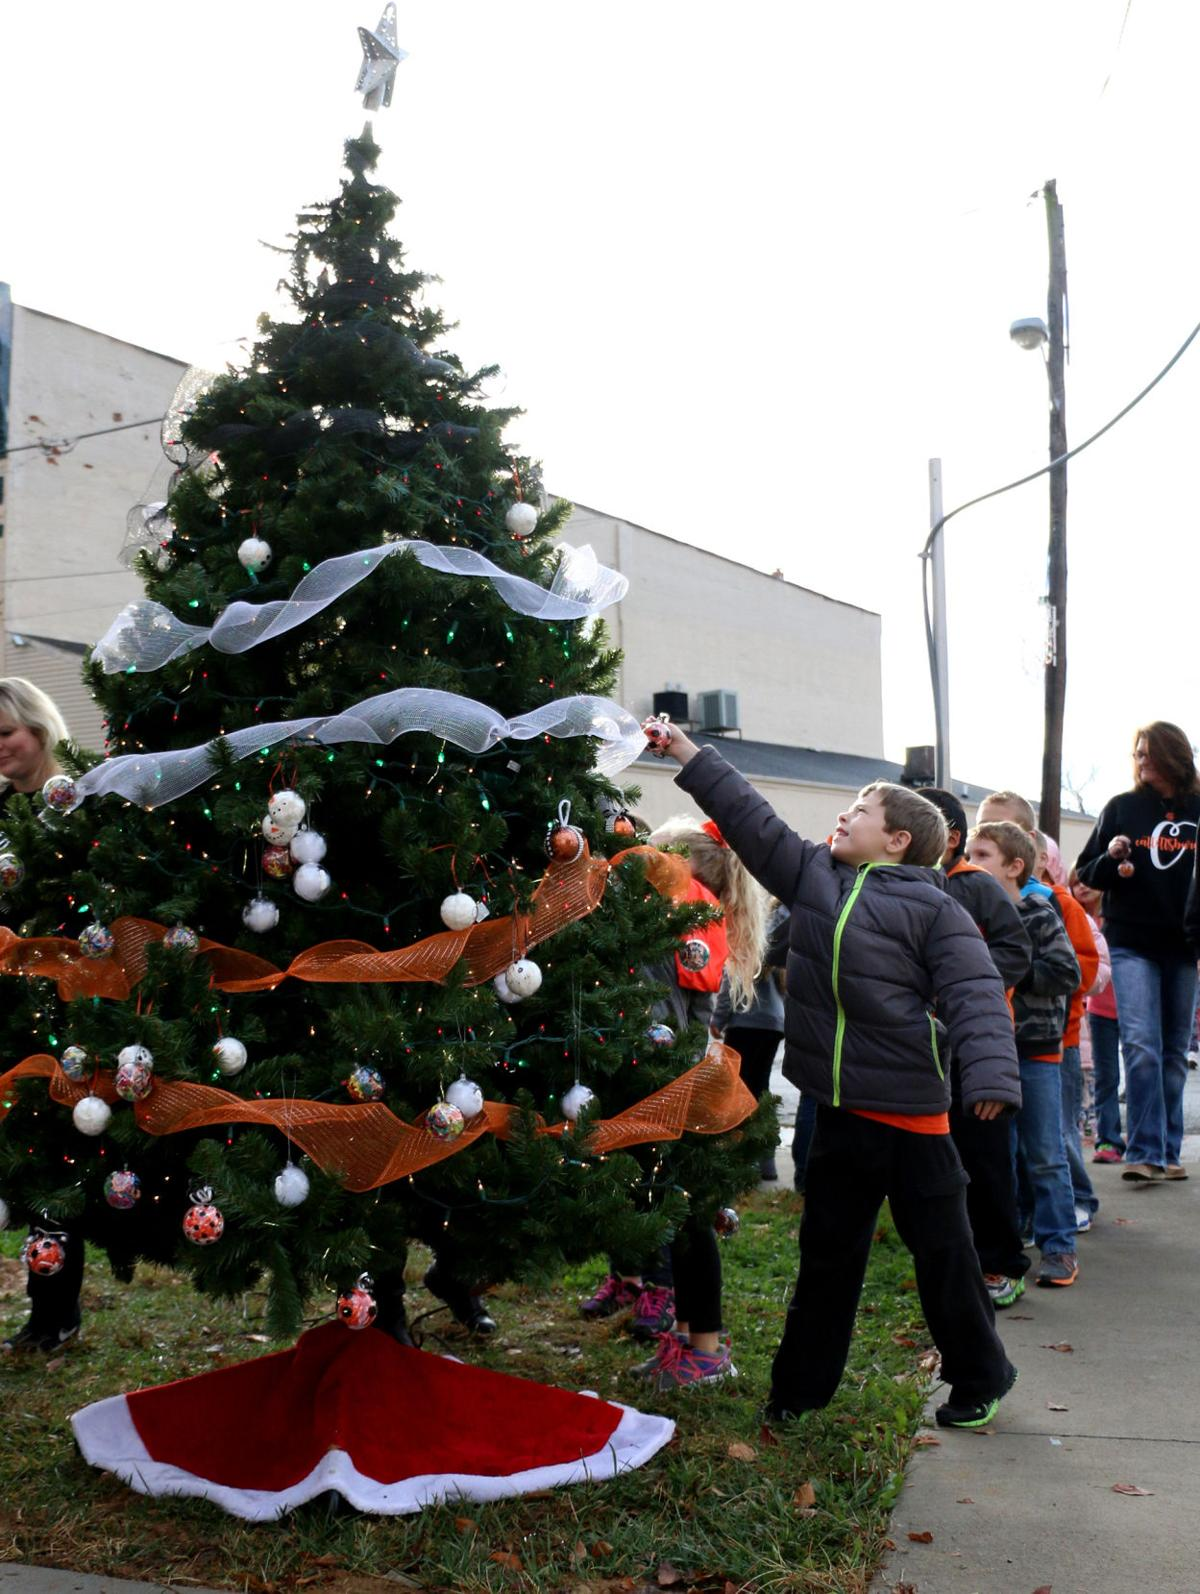 Catlettsburg tree trimming by Catlettsburg Elementary students.